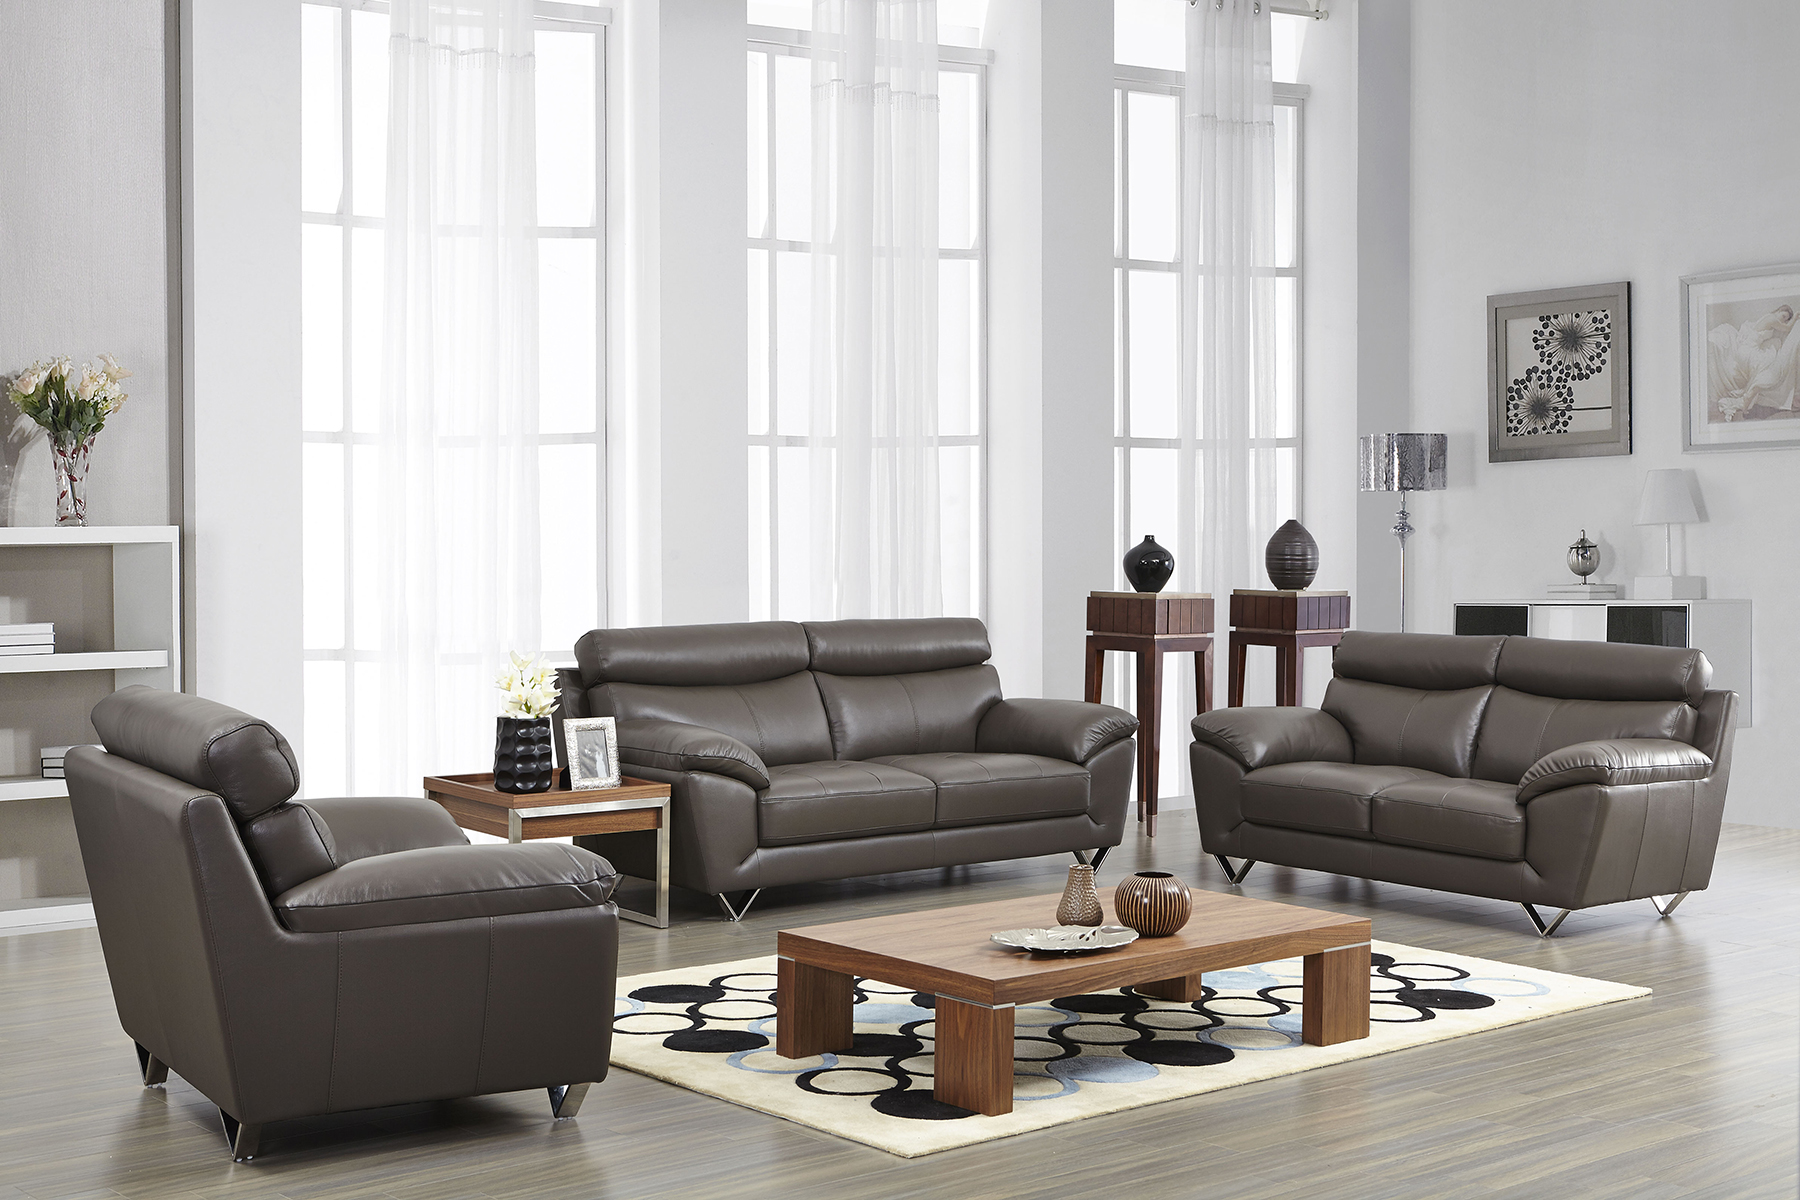 Contemporary Stylish Leather 3Pc Sofa Set with Chrome Legs Chicago